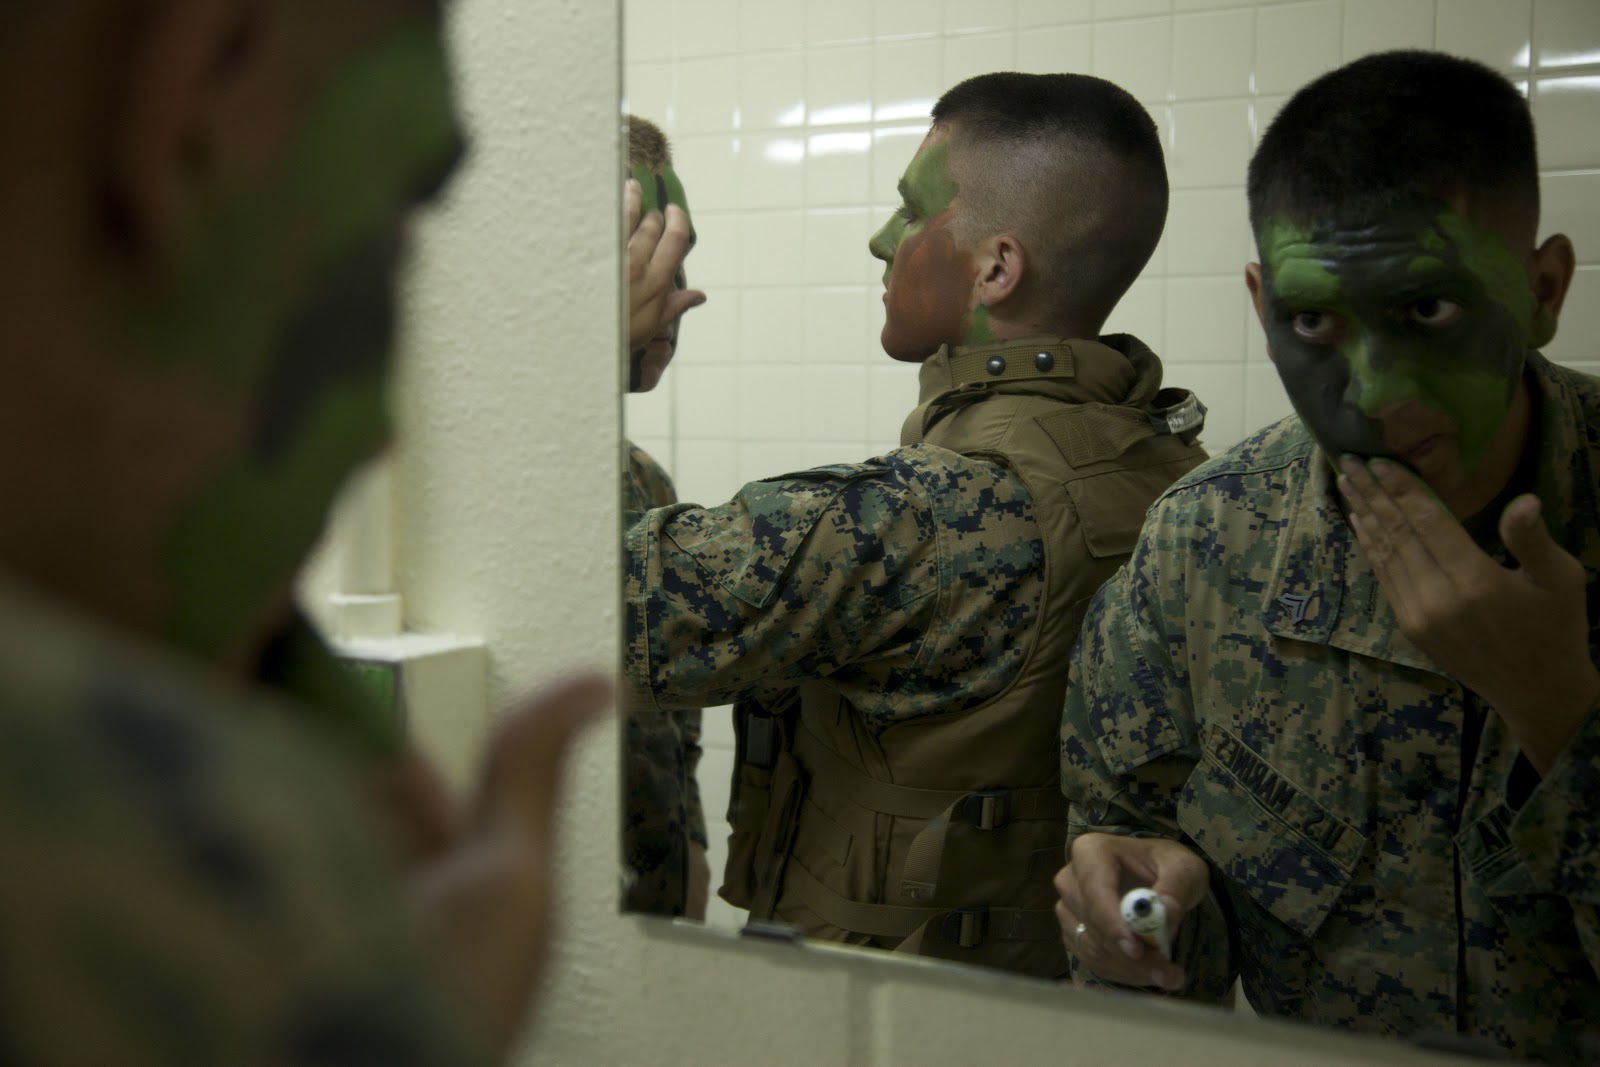 Tactical Gear and Military Clothing News : FR Camouflage Face Paint